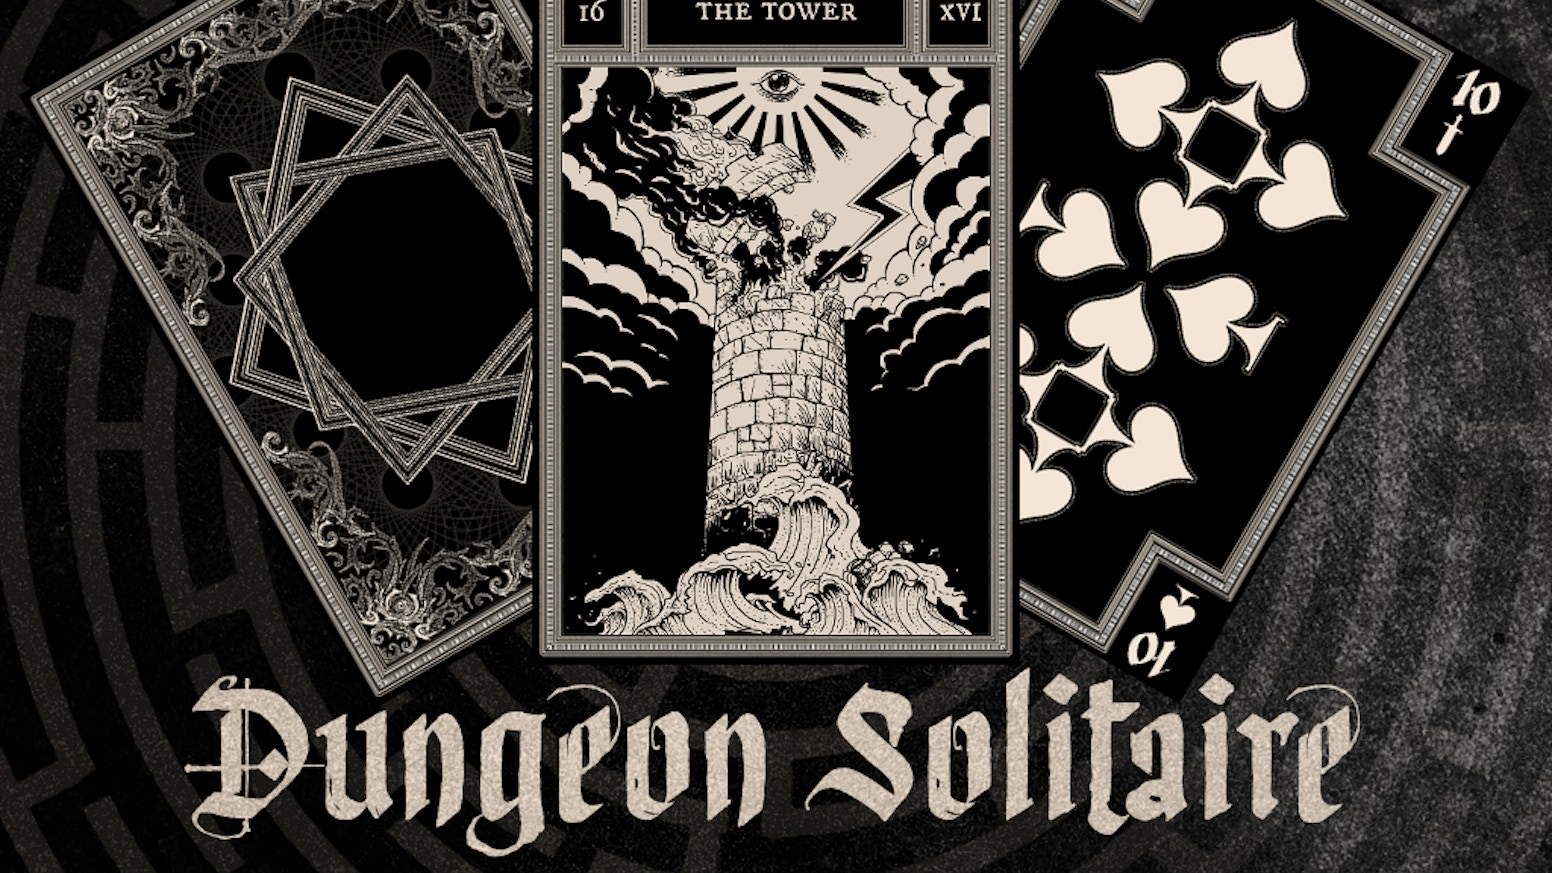 Dungeon Solitaire: Labyrinth of Souls by Matthew Lowes